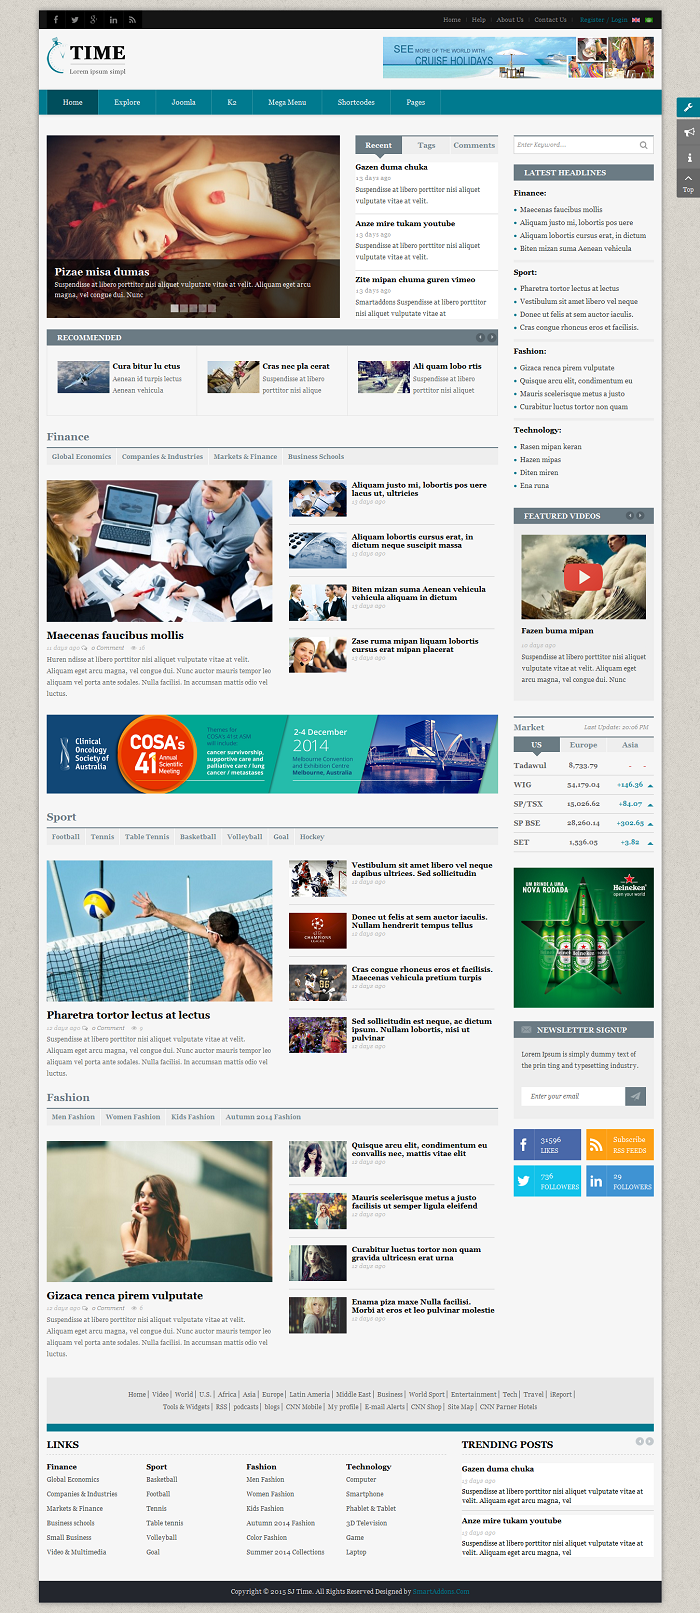 SJ Time - Responsive Joomla News Magazine Template - 16_frame-layout.png